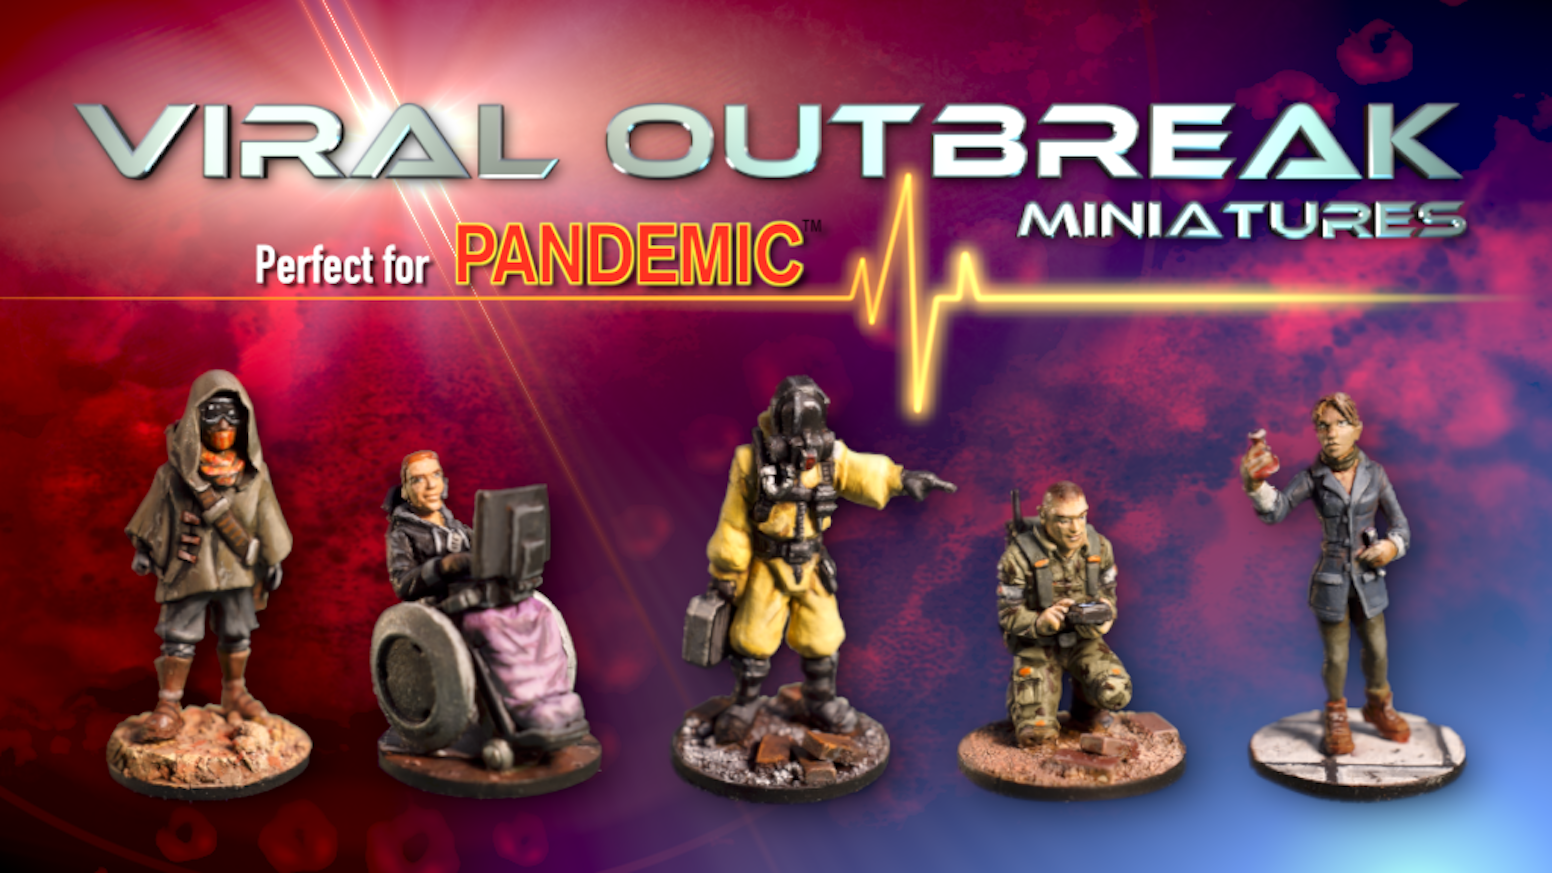 A collection of 28mm outbreak themed plastic miniatures, perfect for Pandemic™.